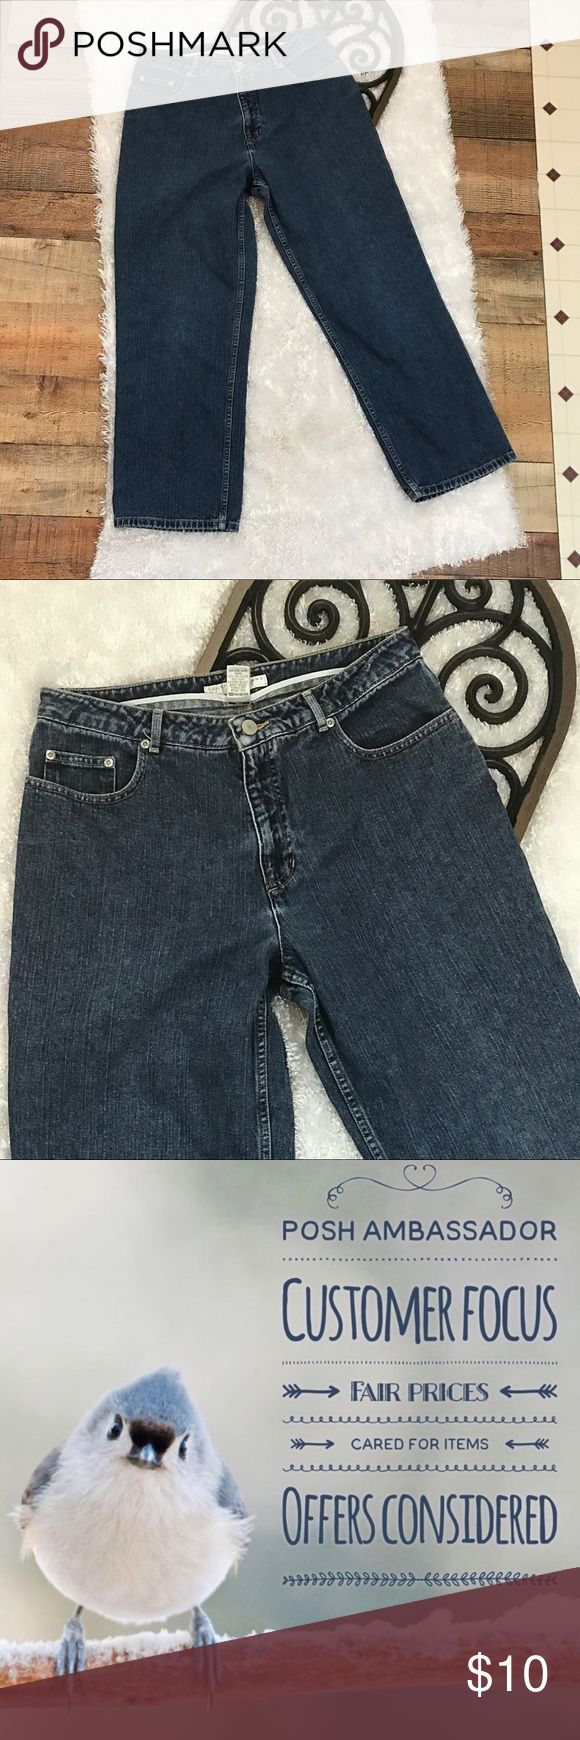 """Geoffrey Beene Straight Leg High Waist Jeans Gently used with no flaws To be confident these Jeans will fit you, compare these measurements with a favorite similar item from your closet: Waist 32"""" Rise 12"""" Inseam 29"""" Length 41"""" I ship Monday through Saturday weather permitting Thank you. Geoffrey Beene Jeans Straight Leg"""